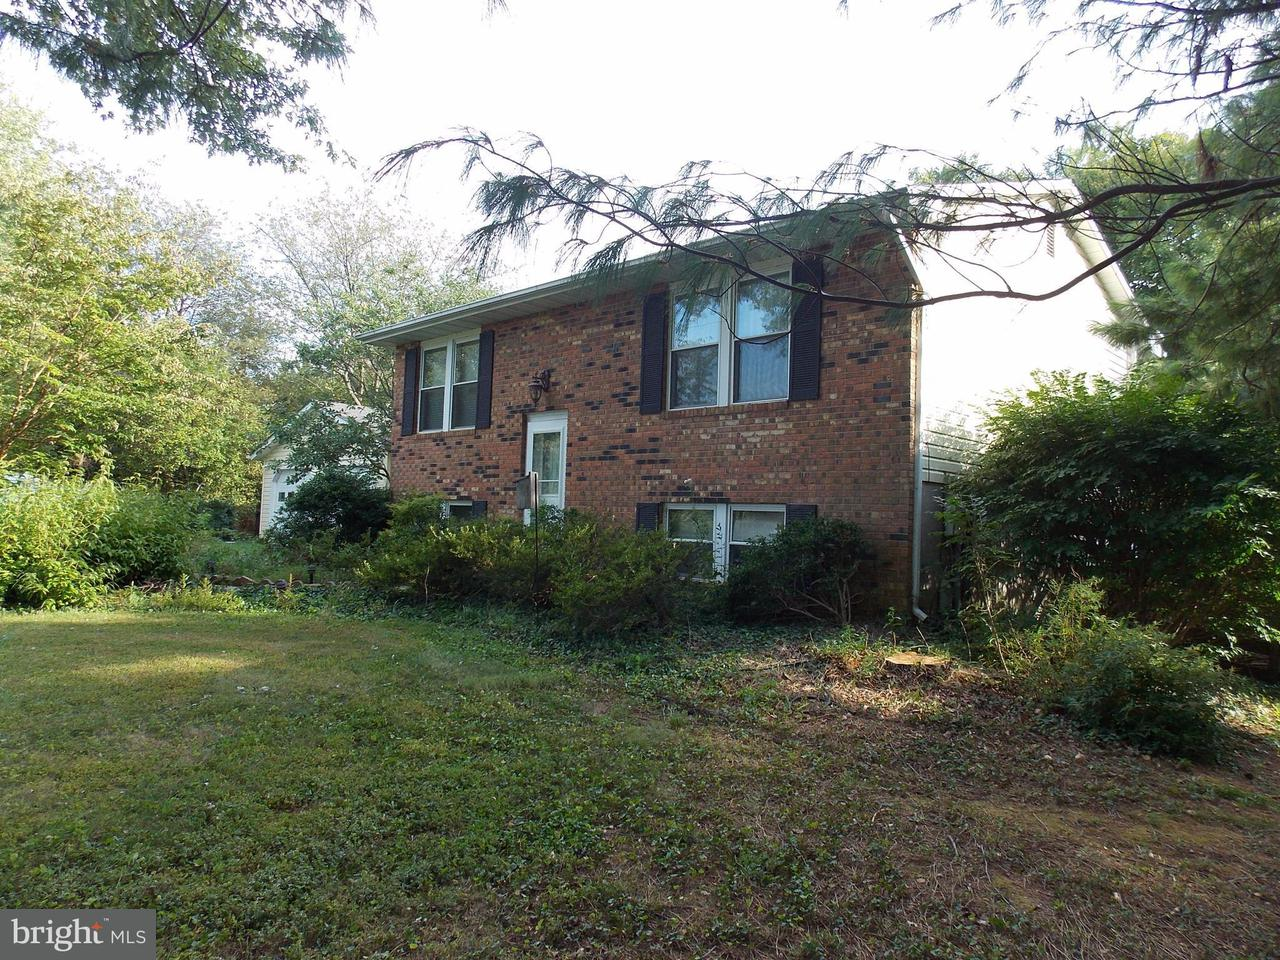 Other Residential for Rent at 841 Chanter Dr Westminster, Maryland 21157 United States